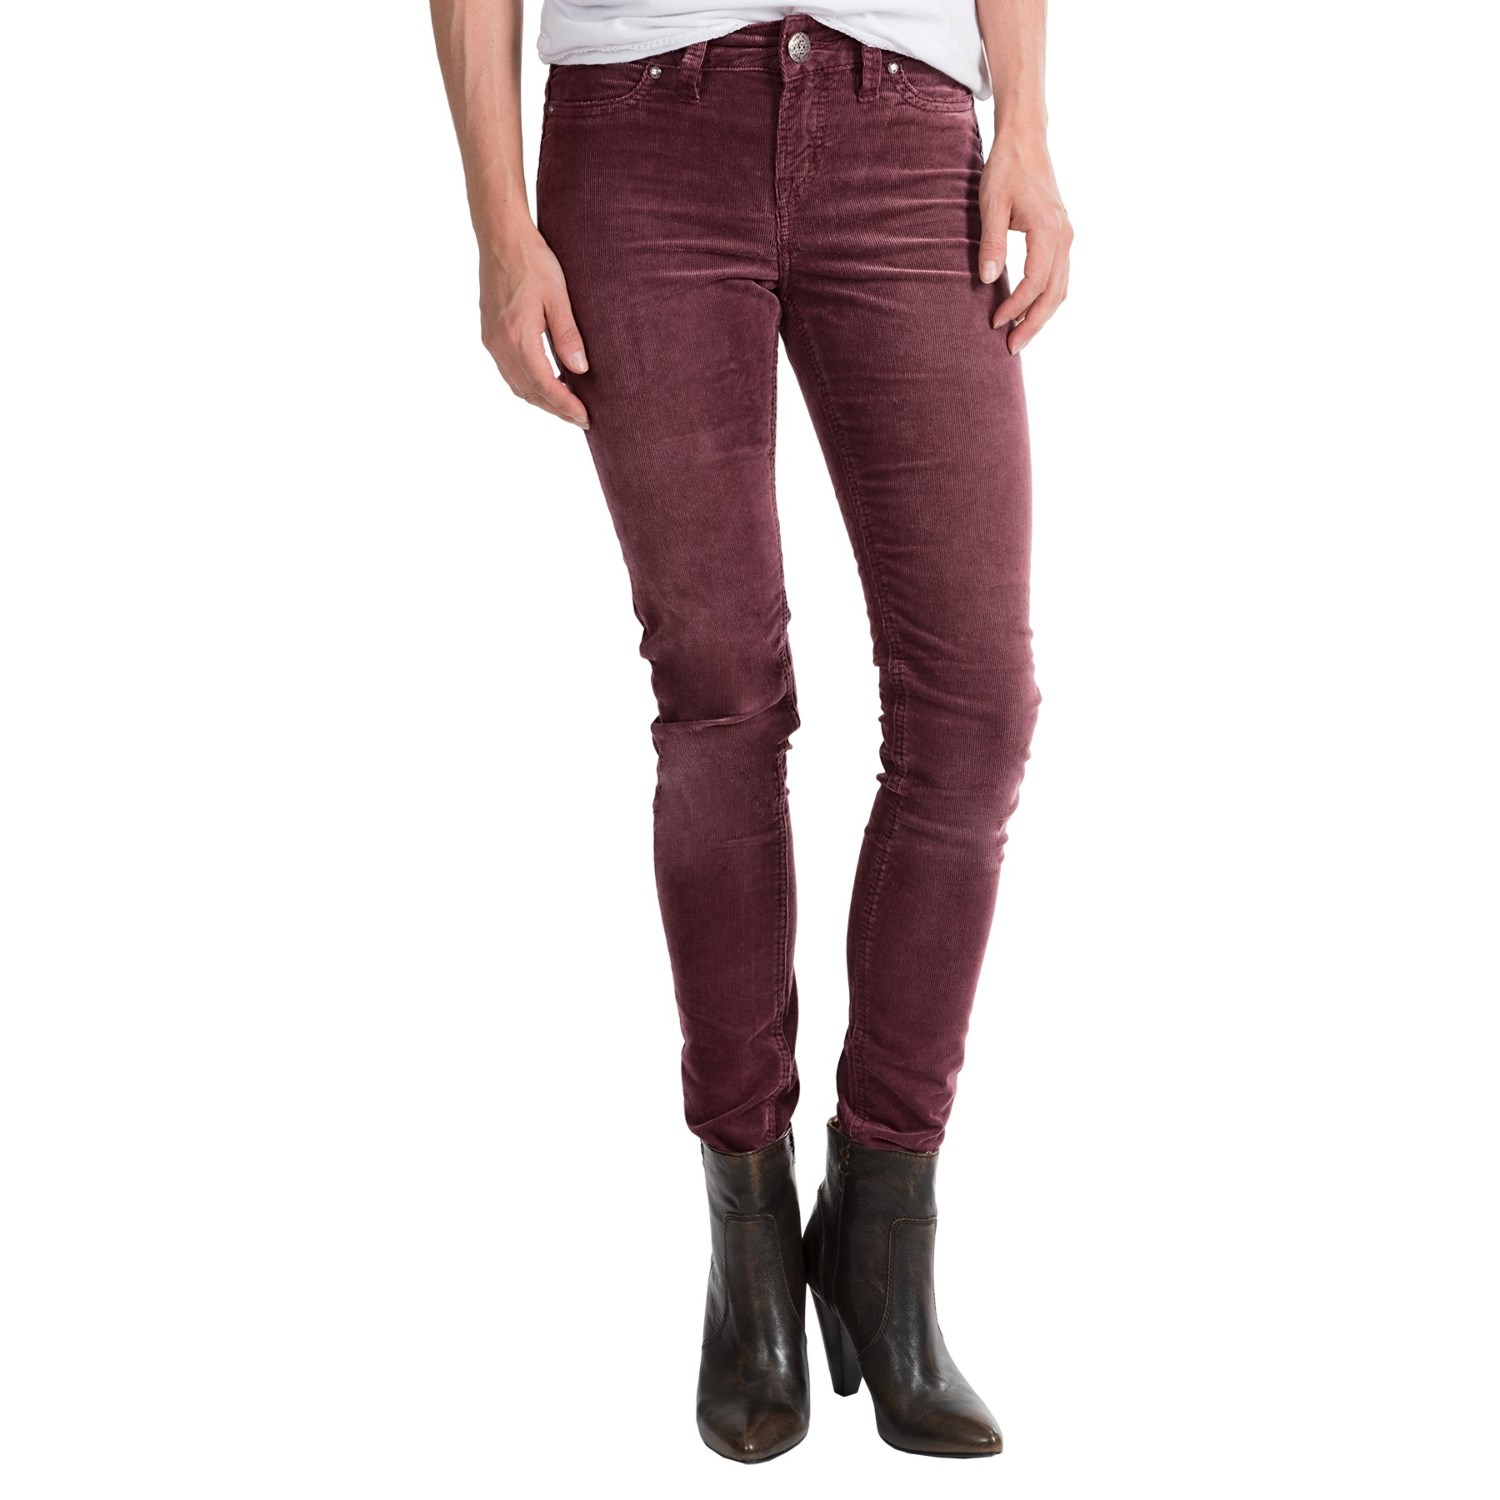 Burgundy Corduroy Pants Women